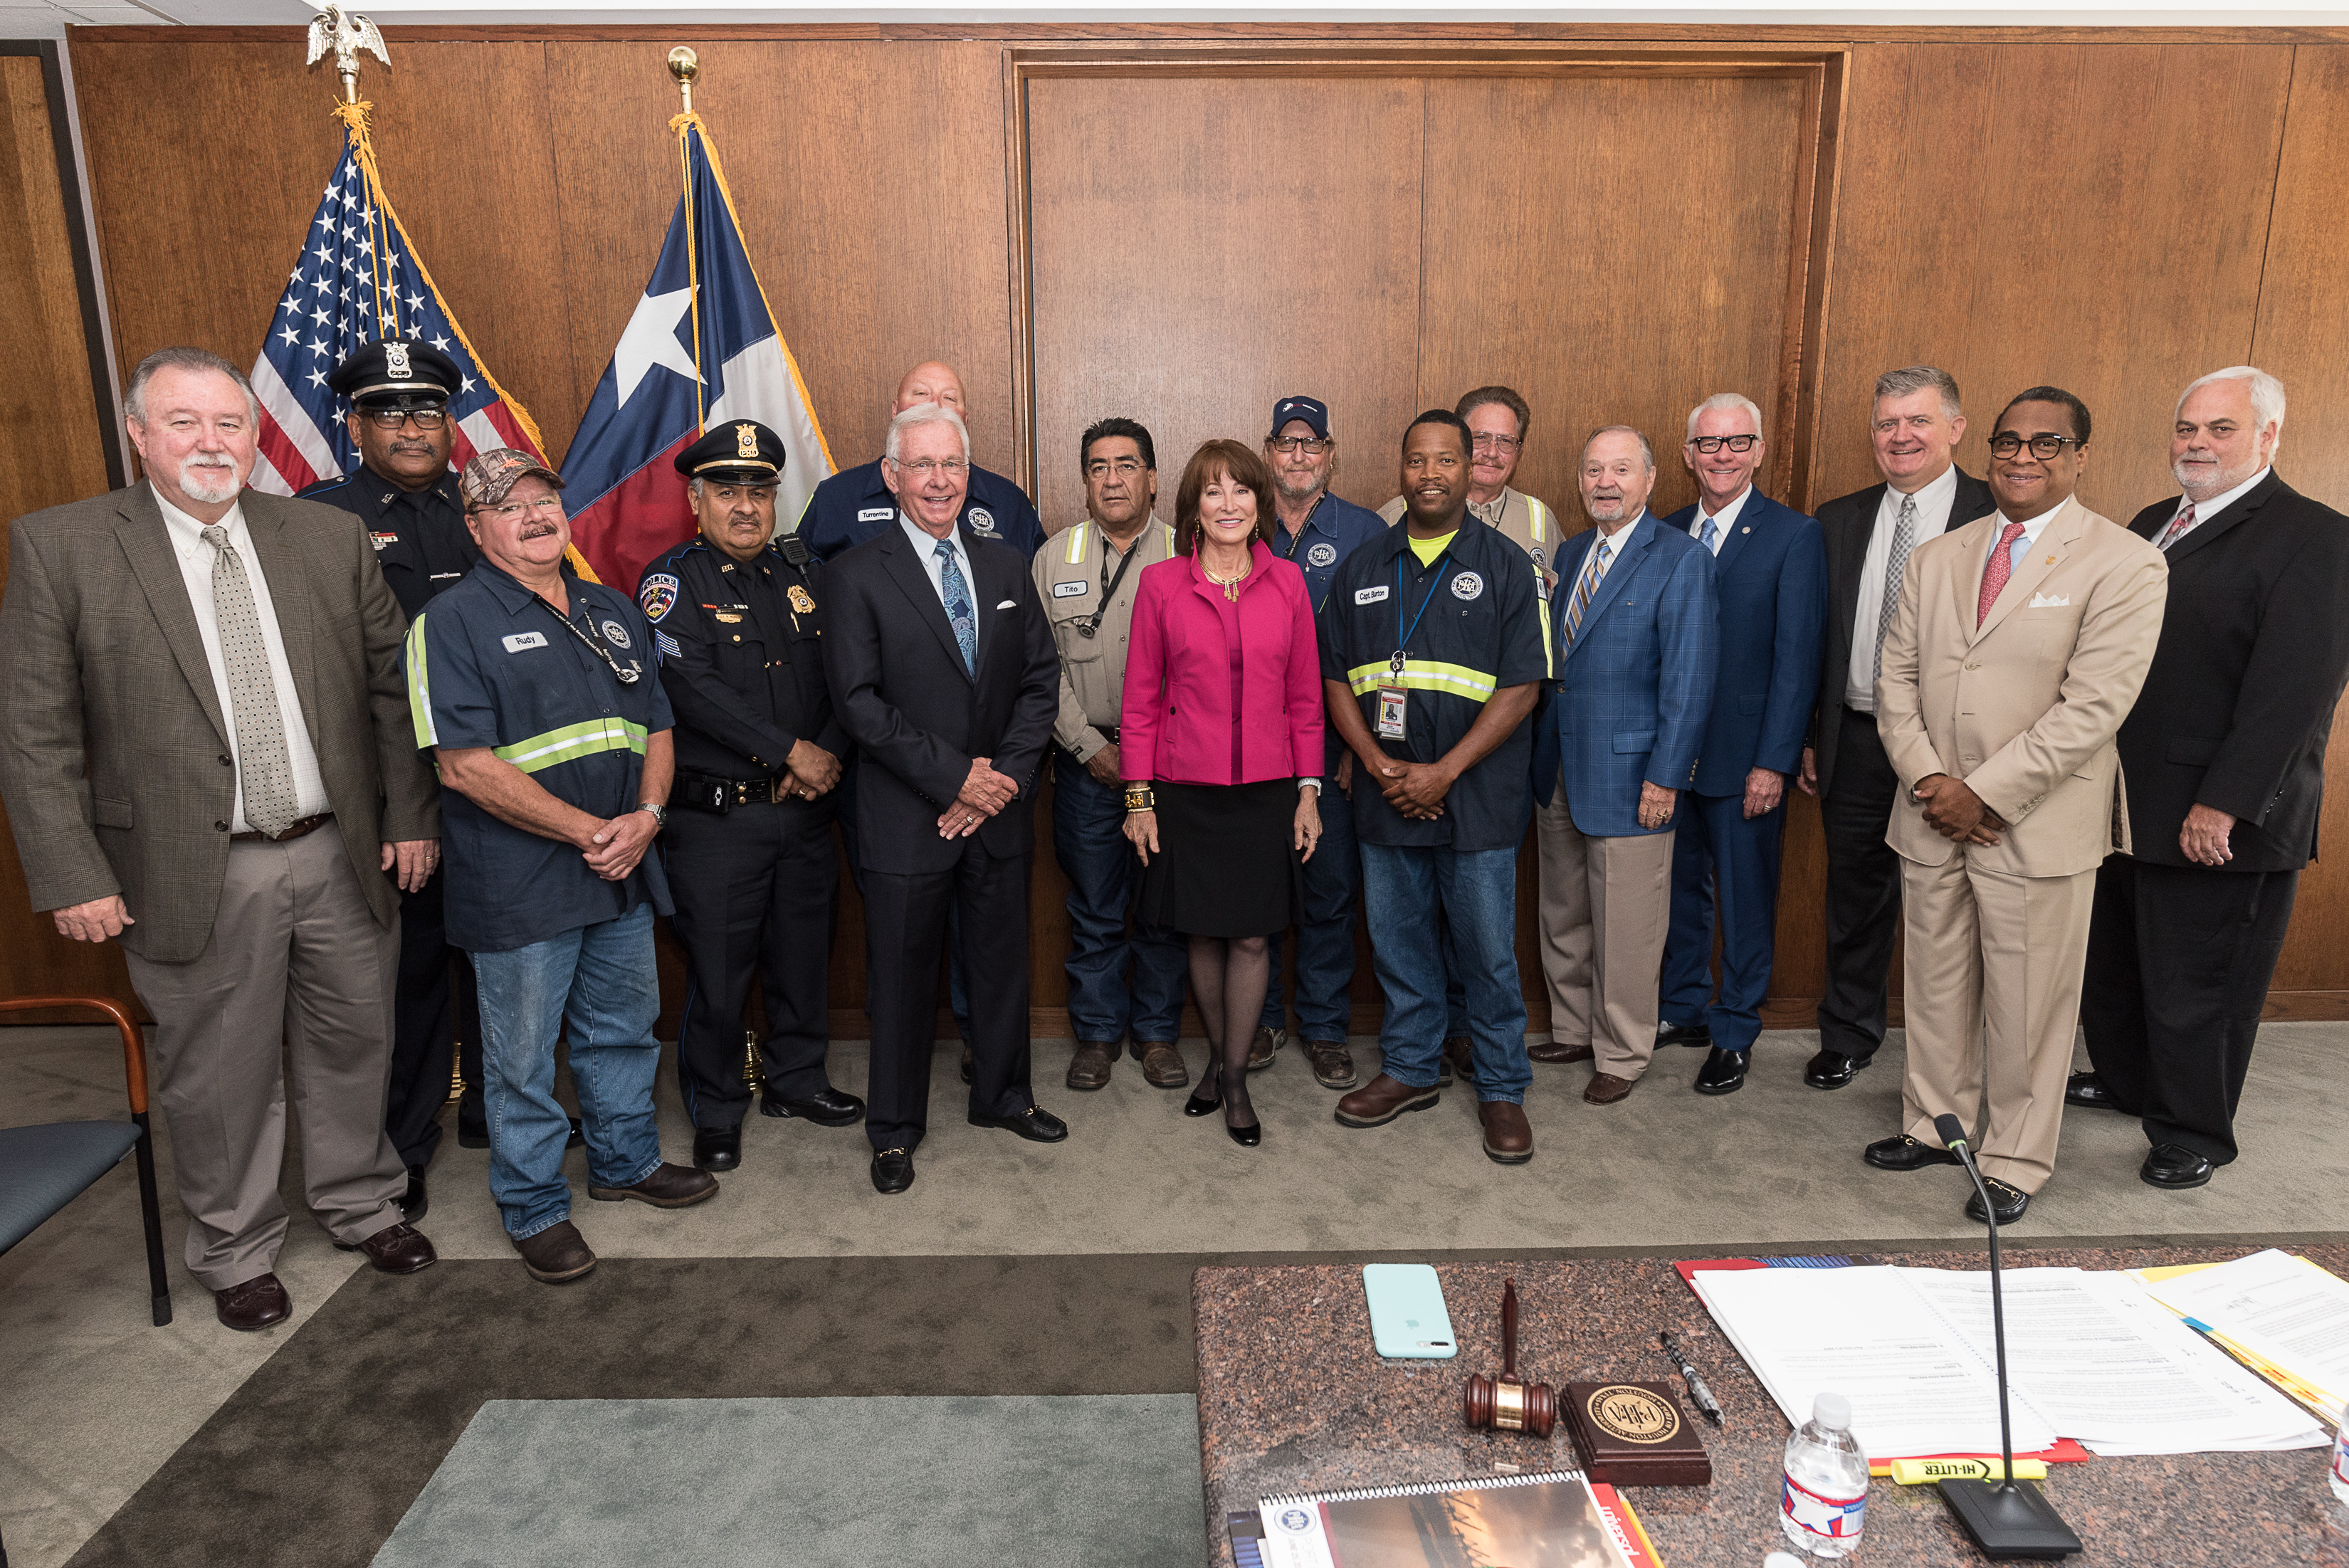 Port Commission of the Port of Houston Authority and Port Houston Executive Director recognized employees with over twenty years of service. (Photo: Business Wire)